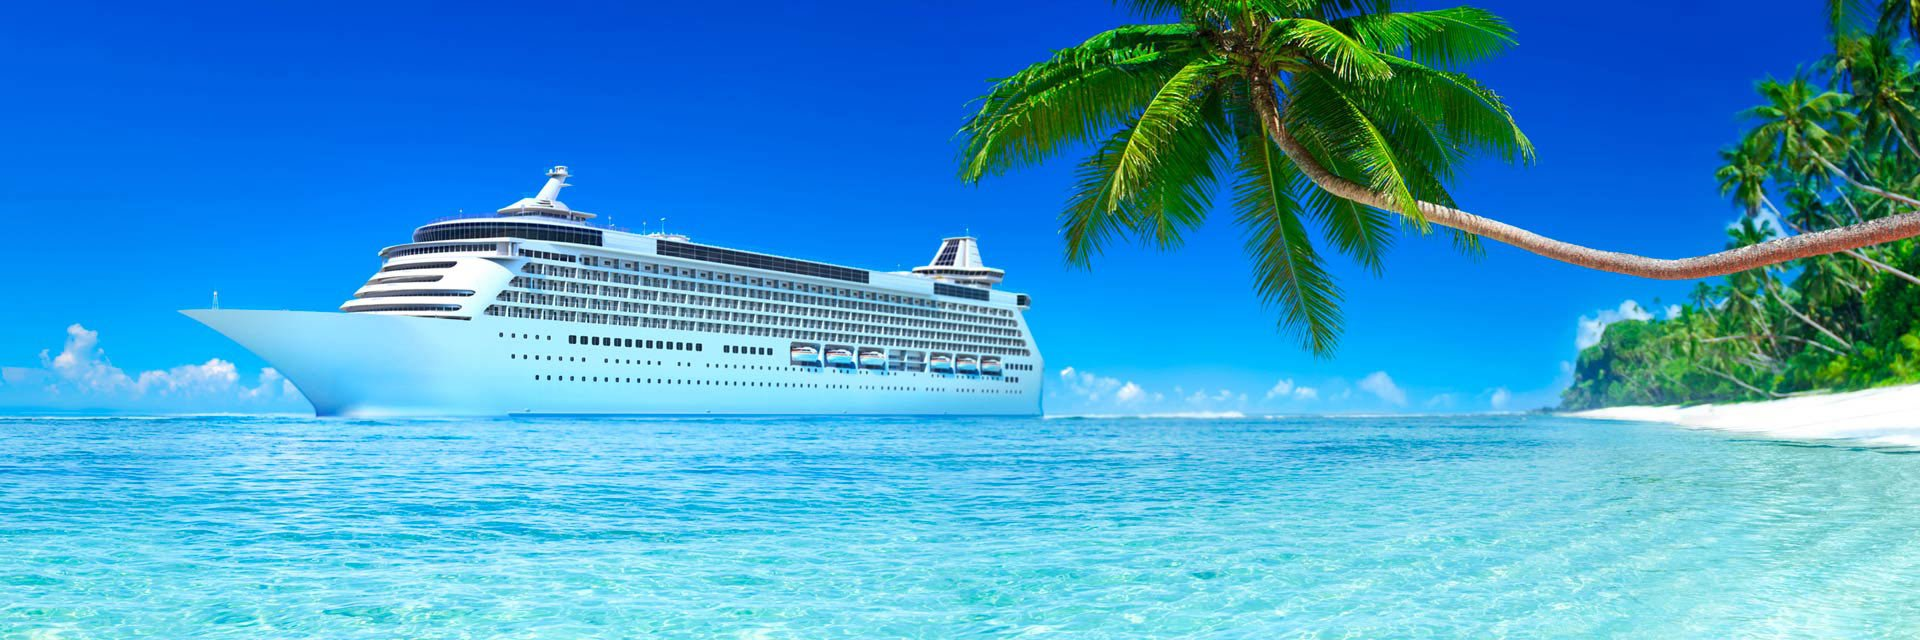 Cruise ship on a beach in paradise